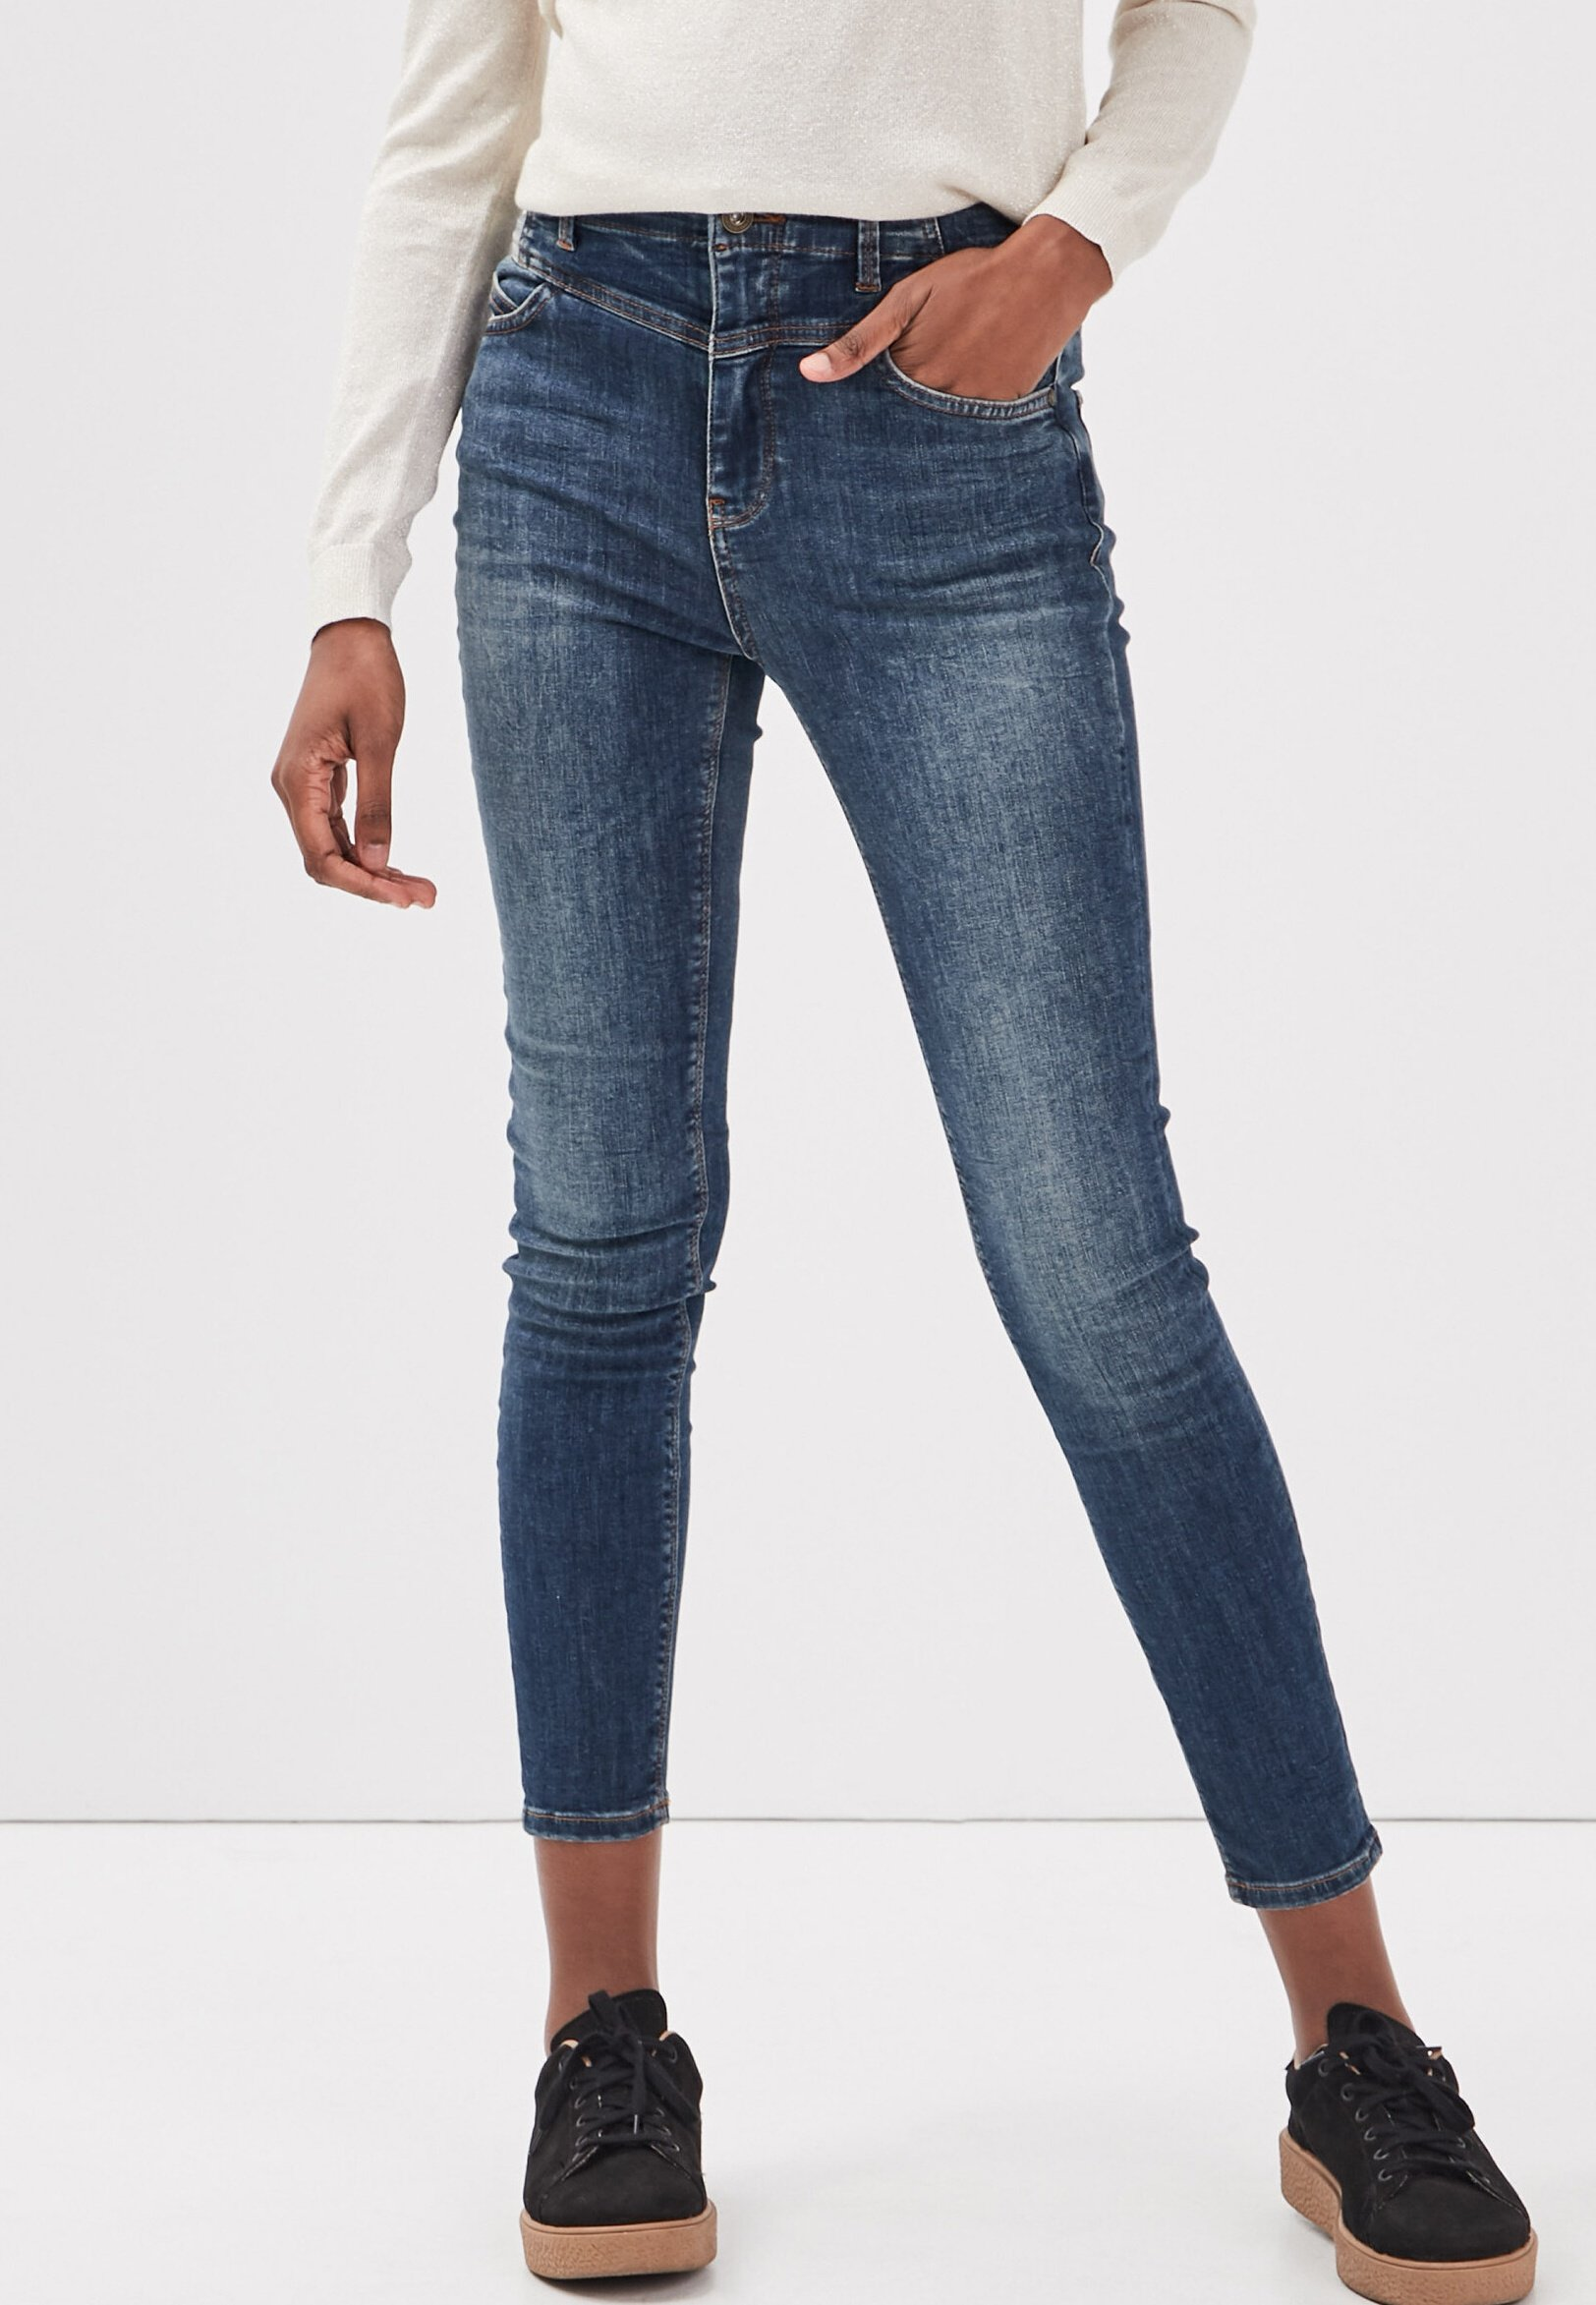 Damen mit hoher Taille - Jeans Skinny Fit